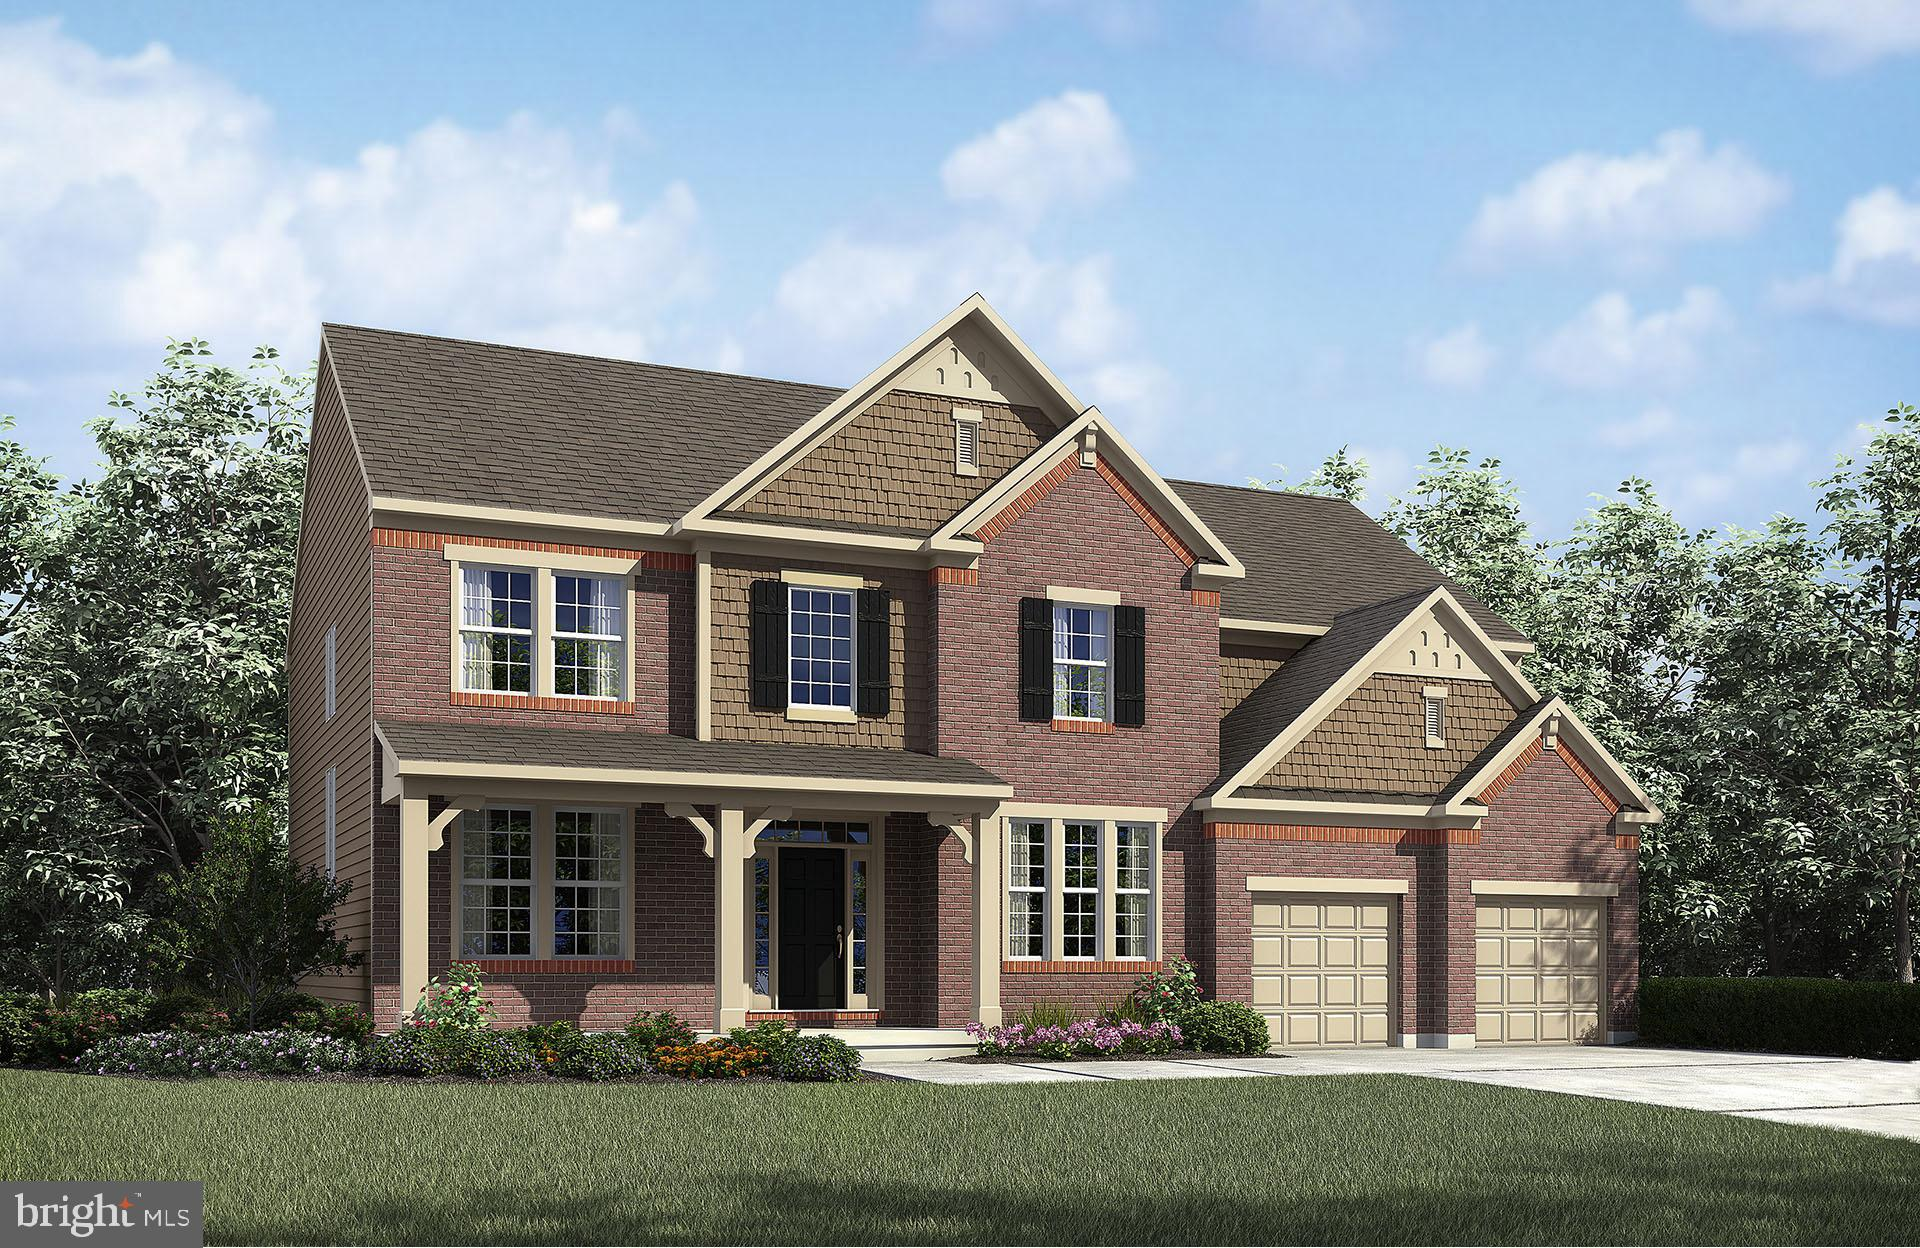 Visit the Ashlawn C in Tallyn Ridge. Estate Collection homes at Tallyn Ridge offer 1/2 to 1/3 acre h